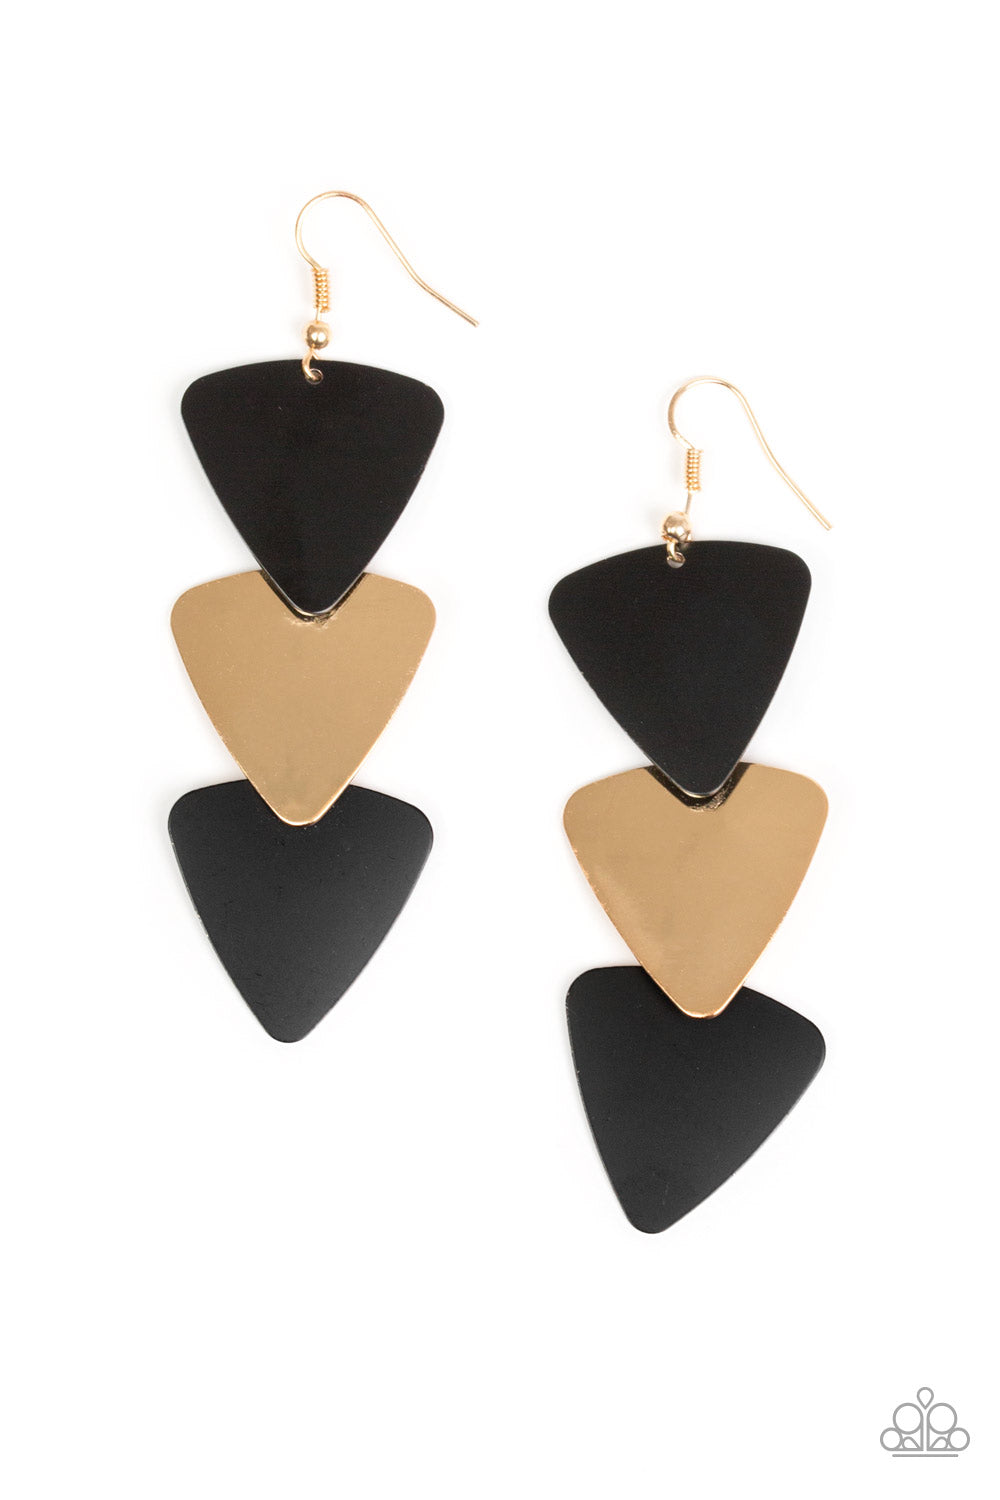 Paparazzi Accessories - Terra Trek - Black Earrings - JMJ Jewelry Collection